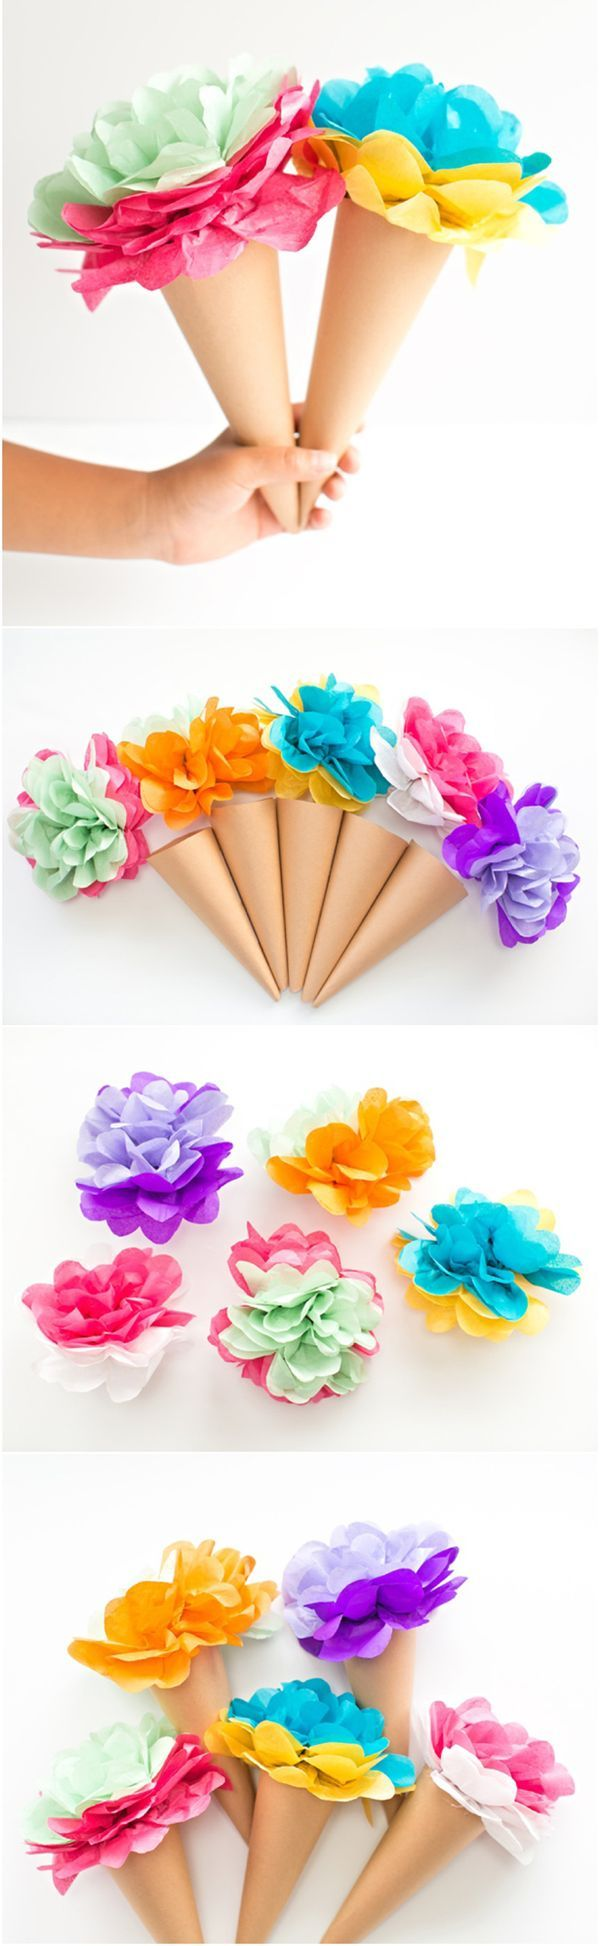 DIY Tissue Paper Ice Cream Cone Flowers. Adorable colorful paper craft for kid and a sweet way to celebrate any special occasion, summer or ice cream party!